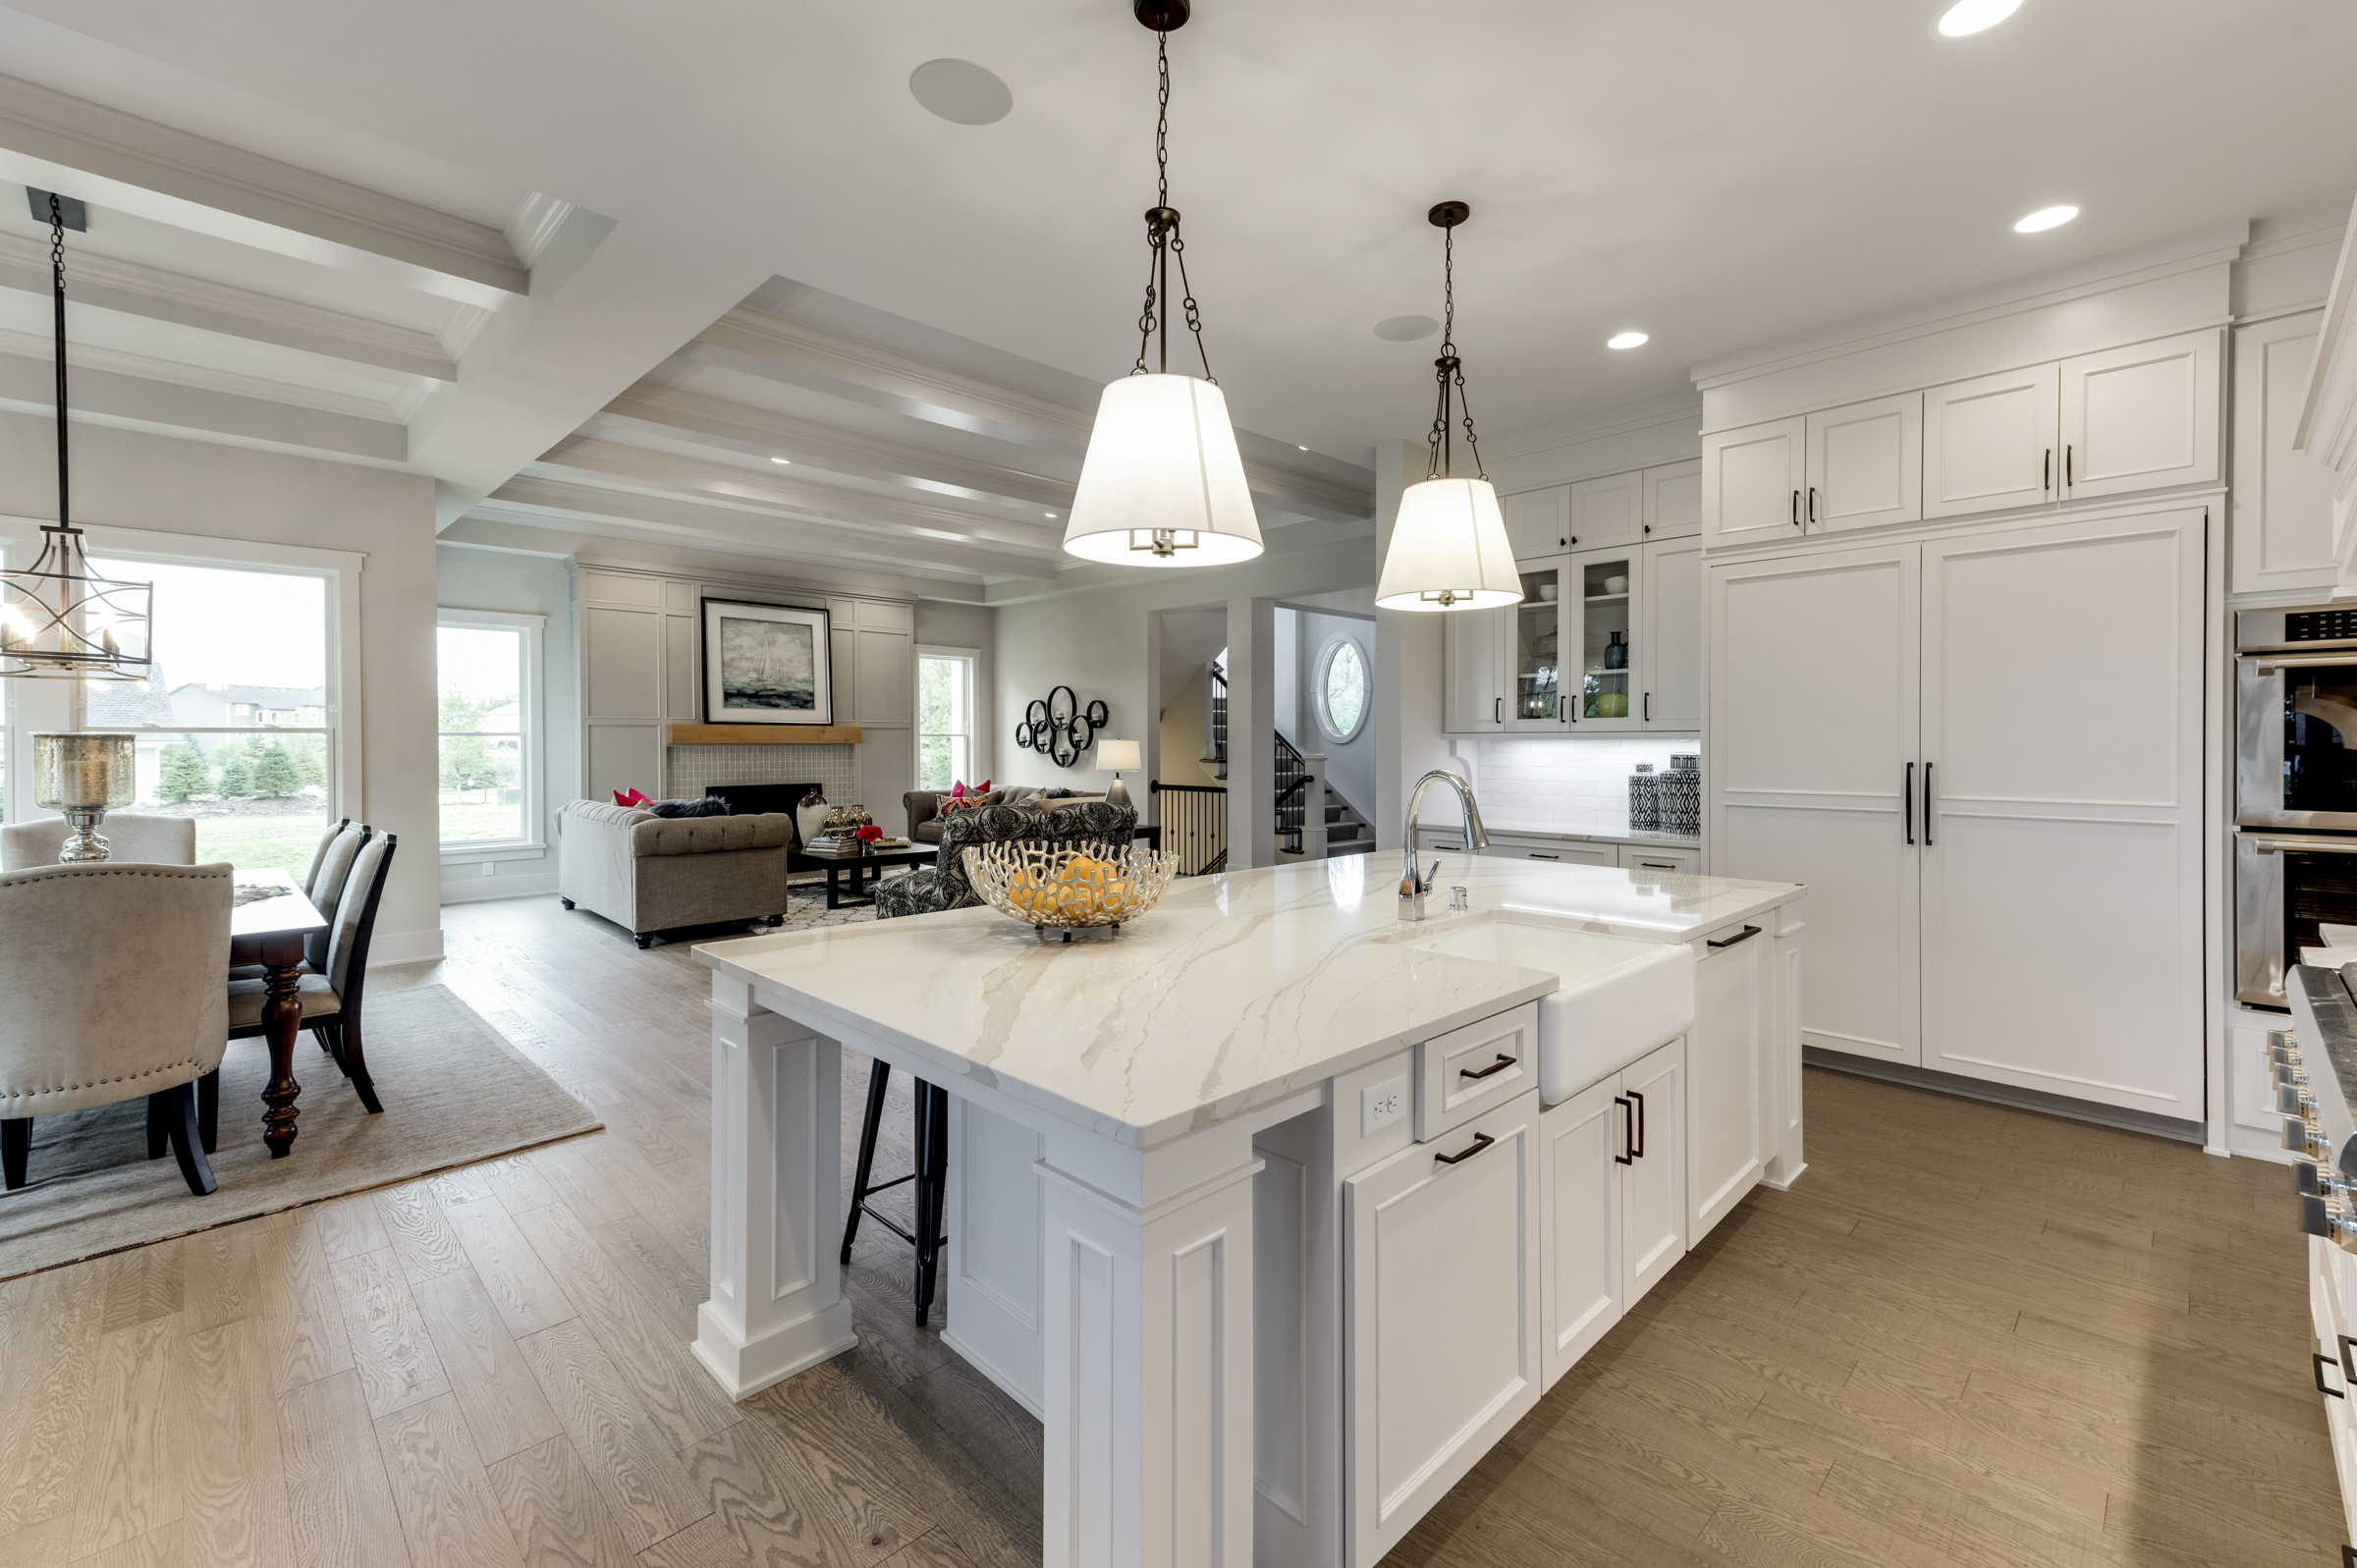 Kitchen of Open Floorplan